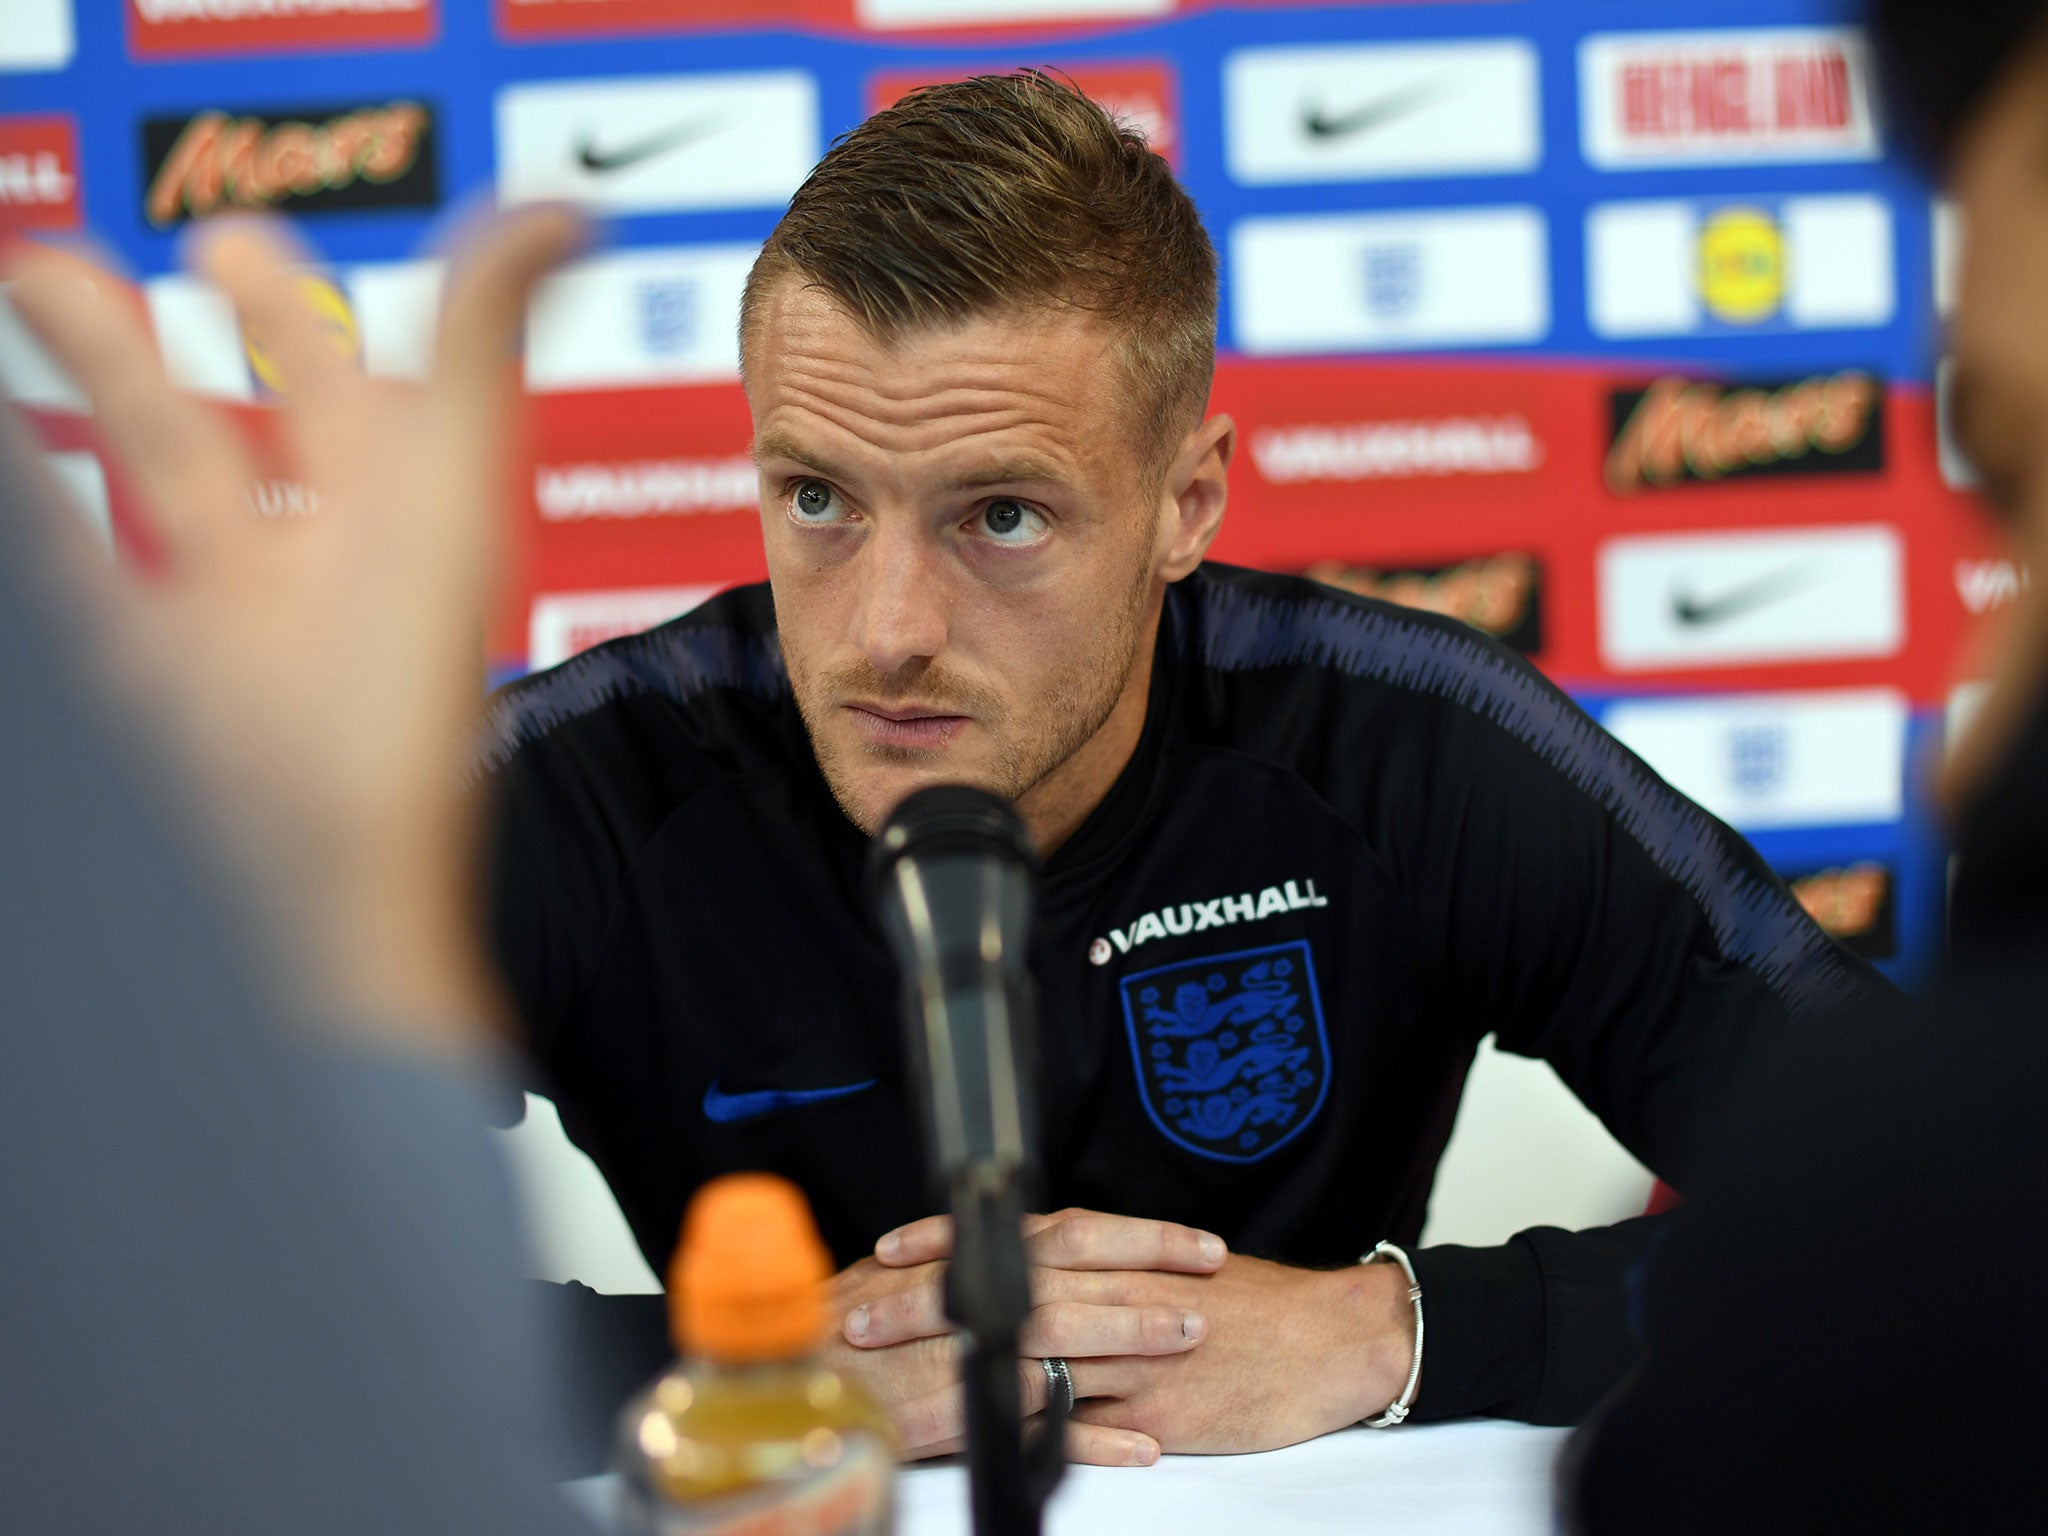 England forward Jamie Vardy reveals he's stopped using snus after last season's backlash